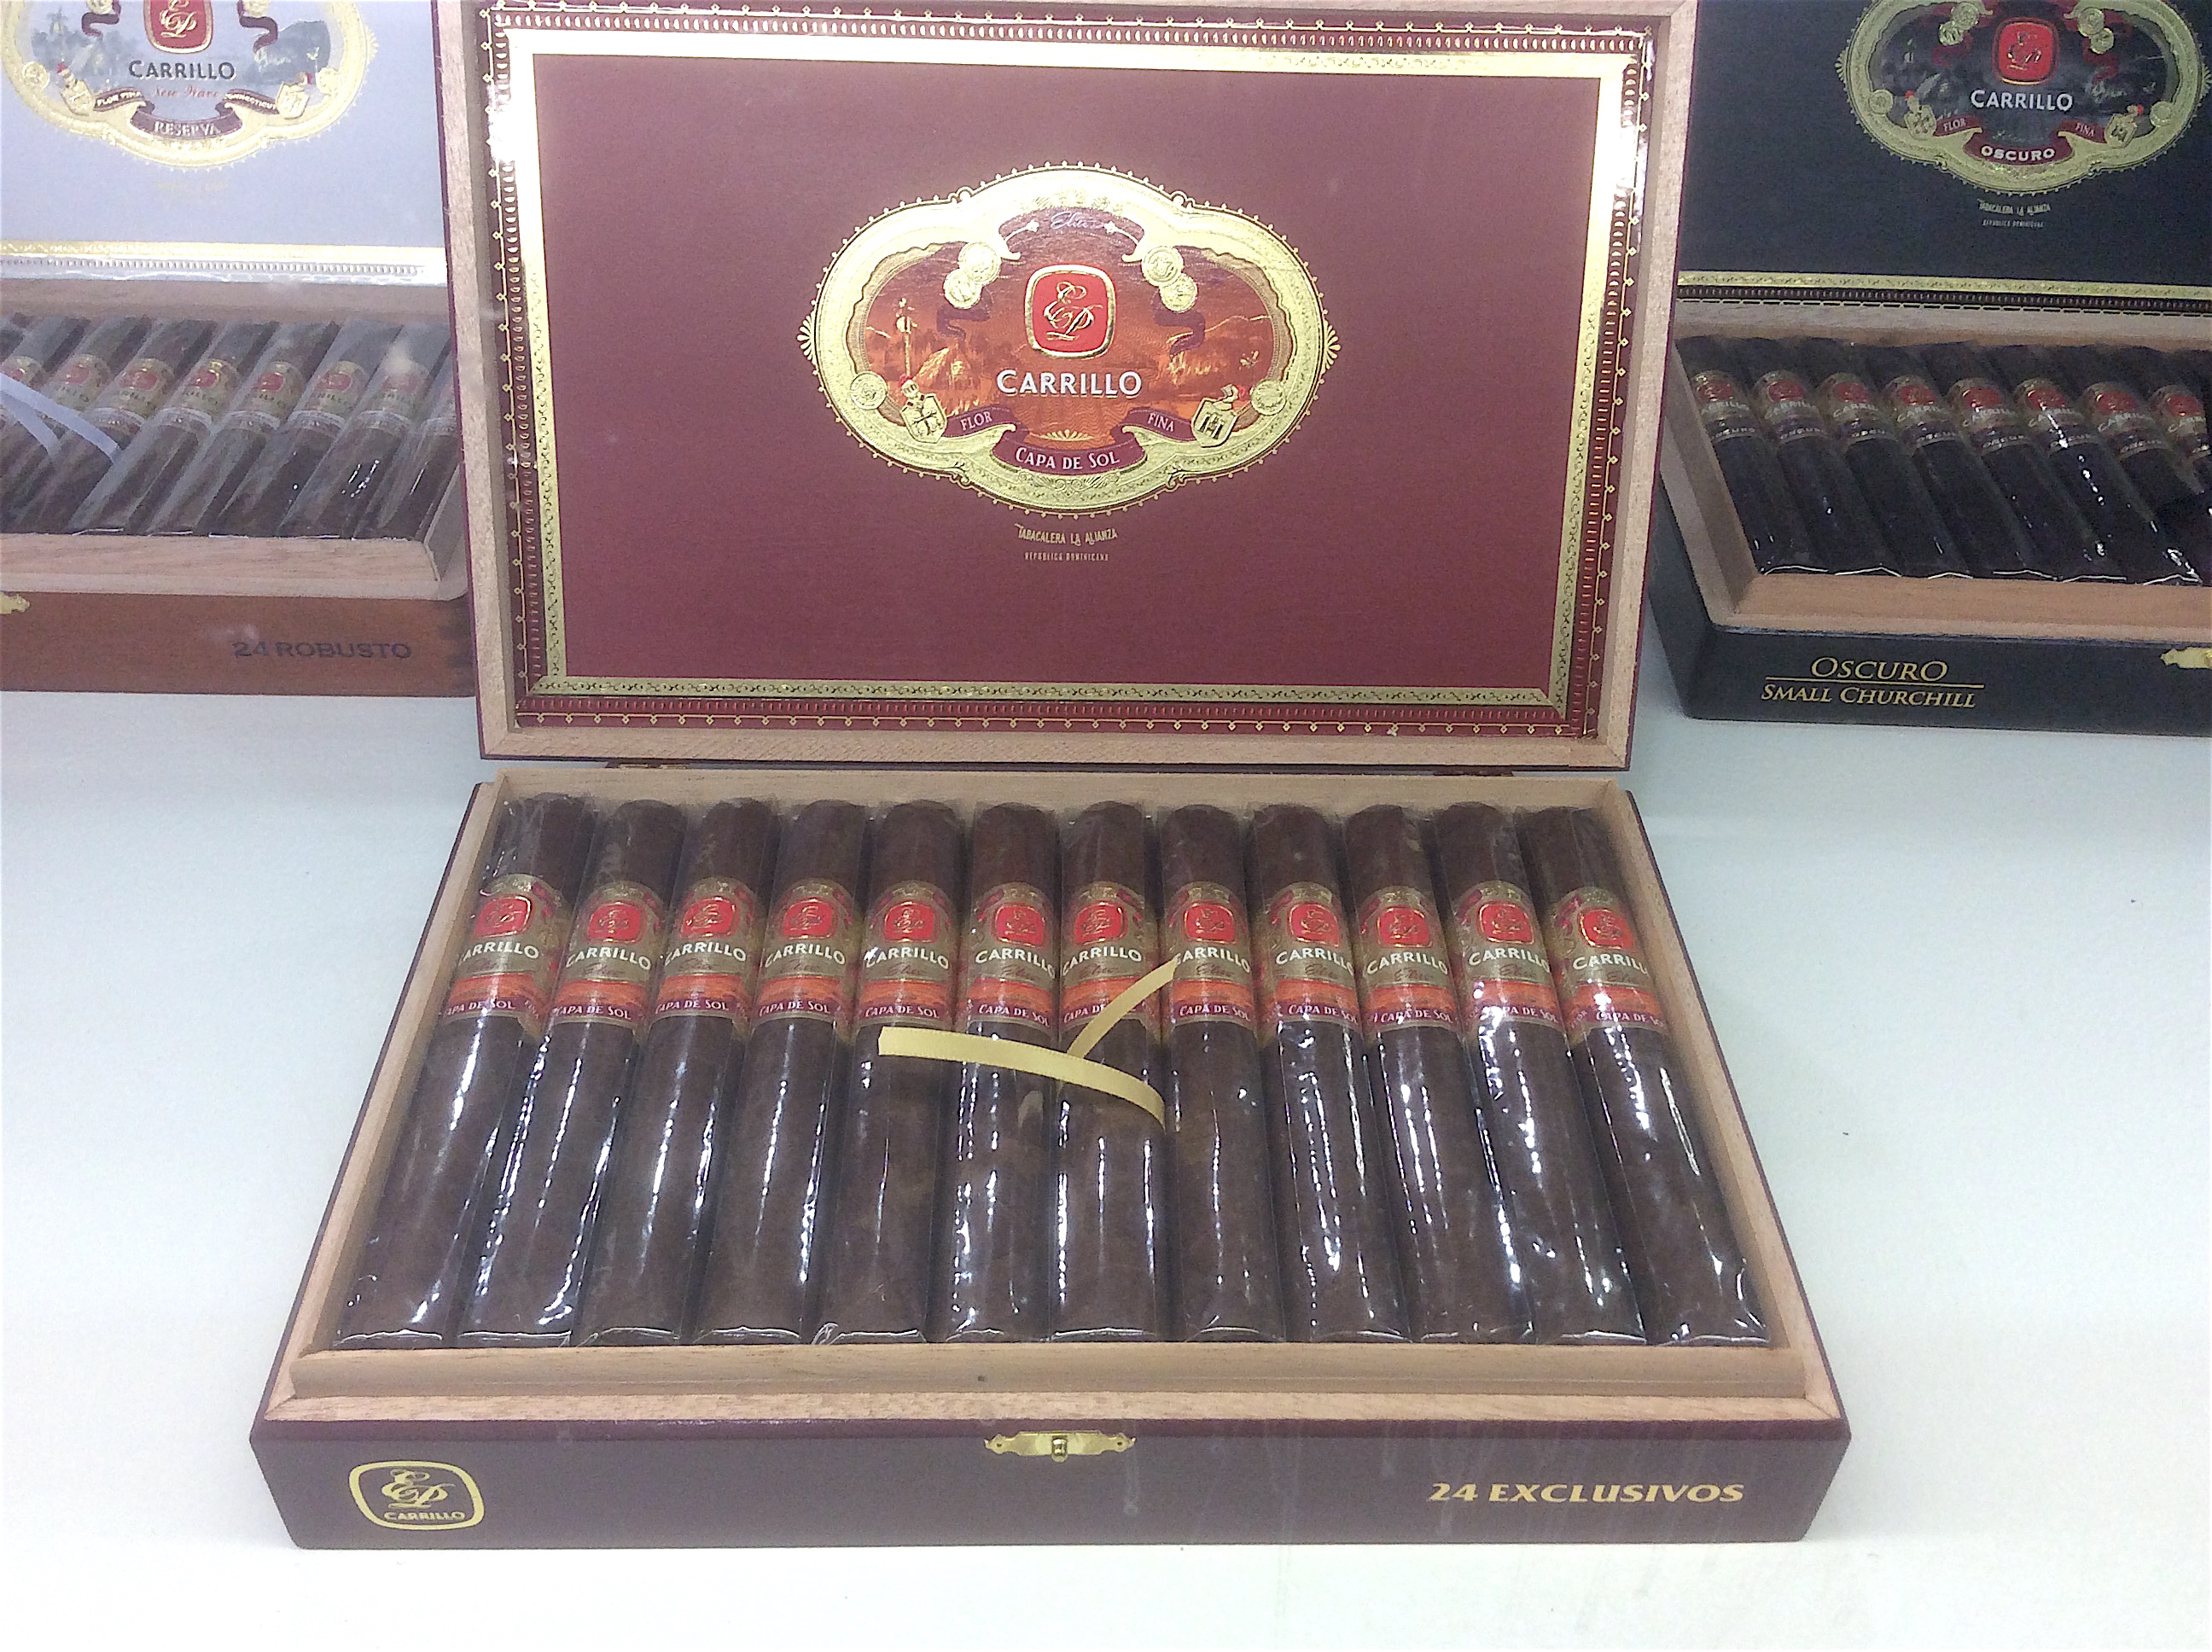 Cigar News: E.P. Carrillo Capa de Sol Makes Debut at 2016 IPCPR